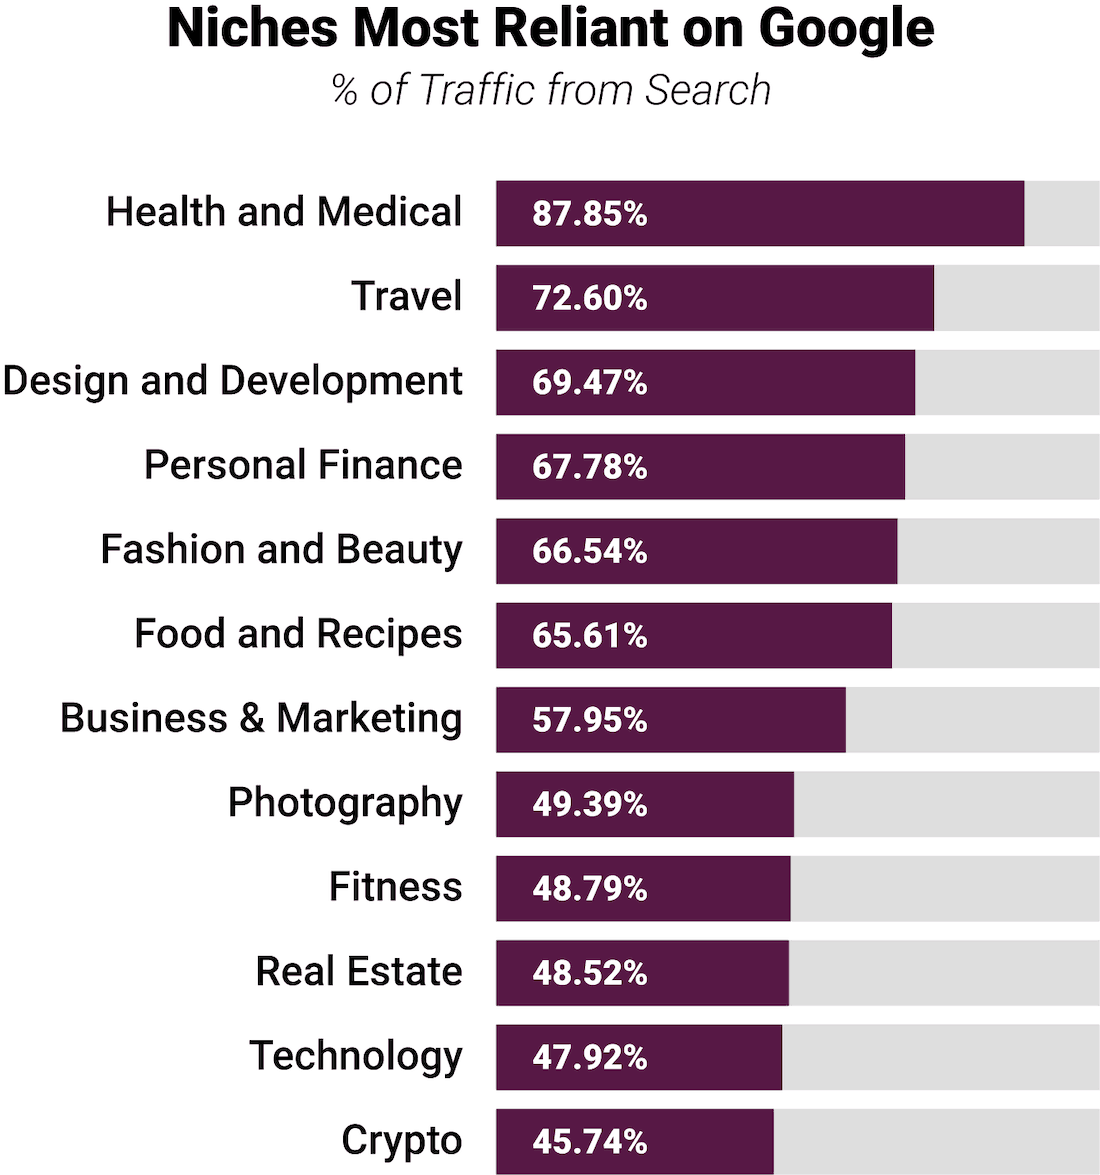 Niches Most Reliant on Google